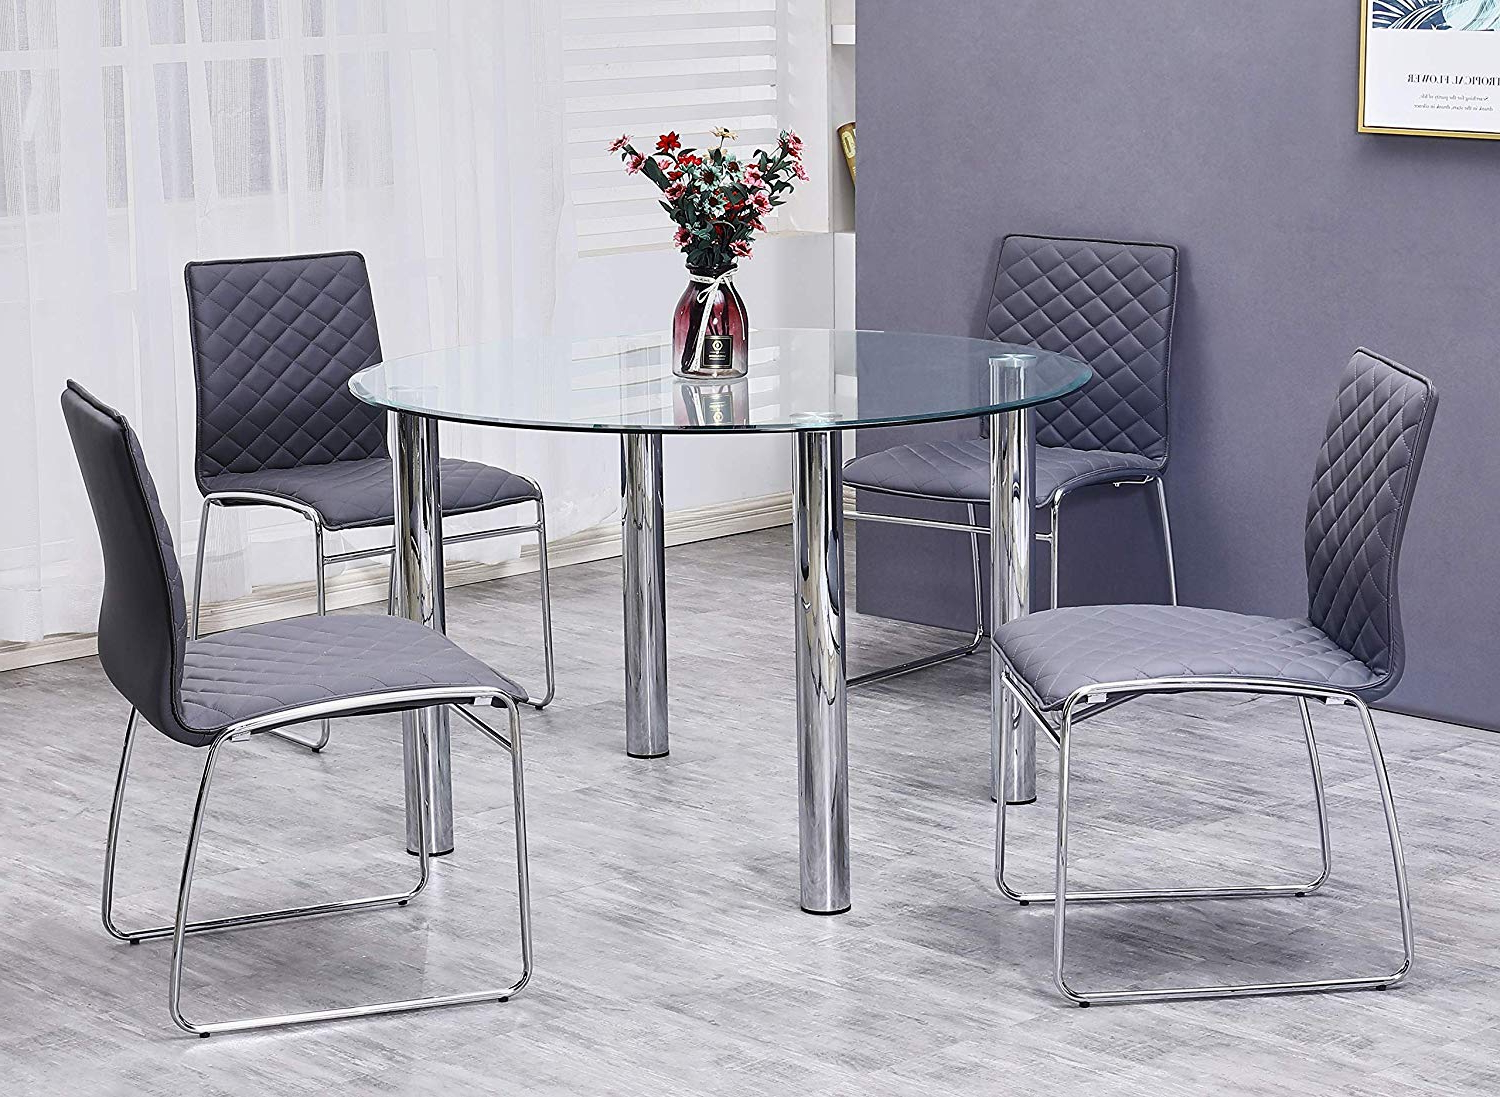 4 Seater Round Wooden Dining Tables With Chrome Legs In 2018 Amazon – Best Master Furniture Tarina 5 Pcs Round Glass (View 6 of 30)